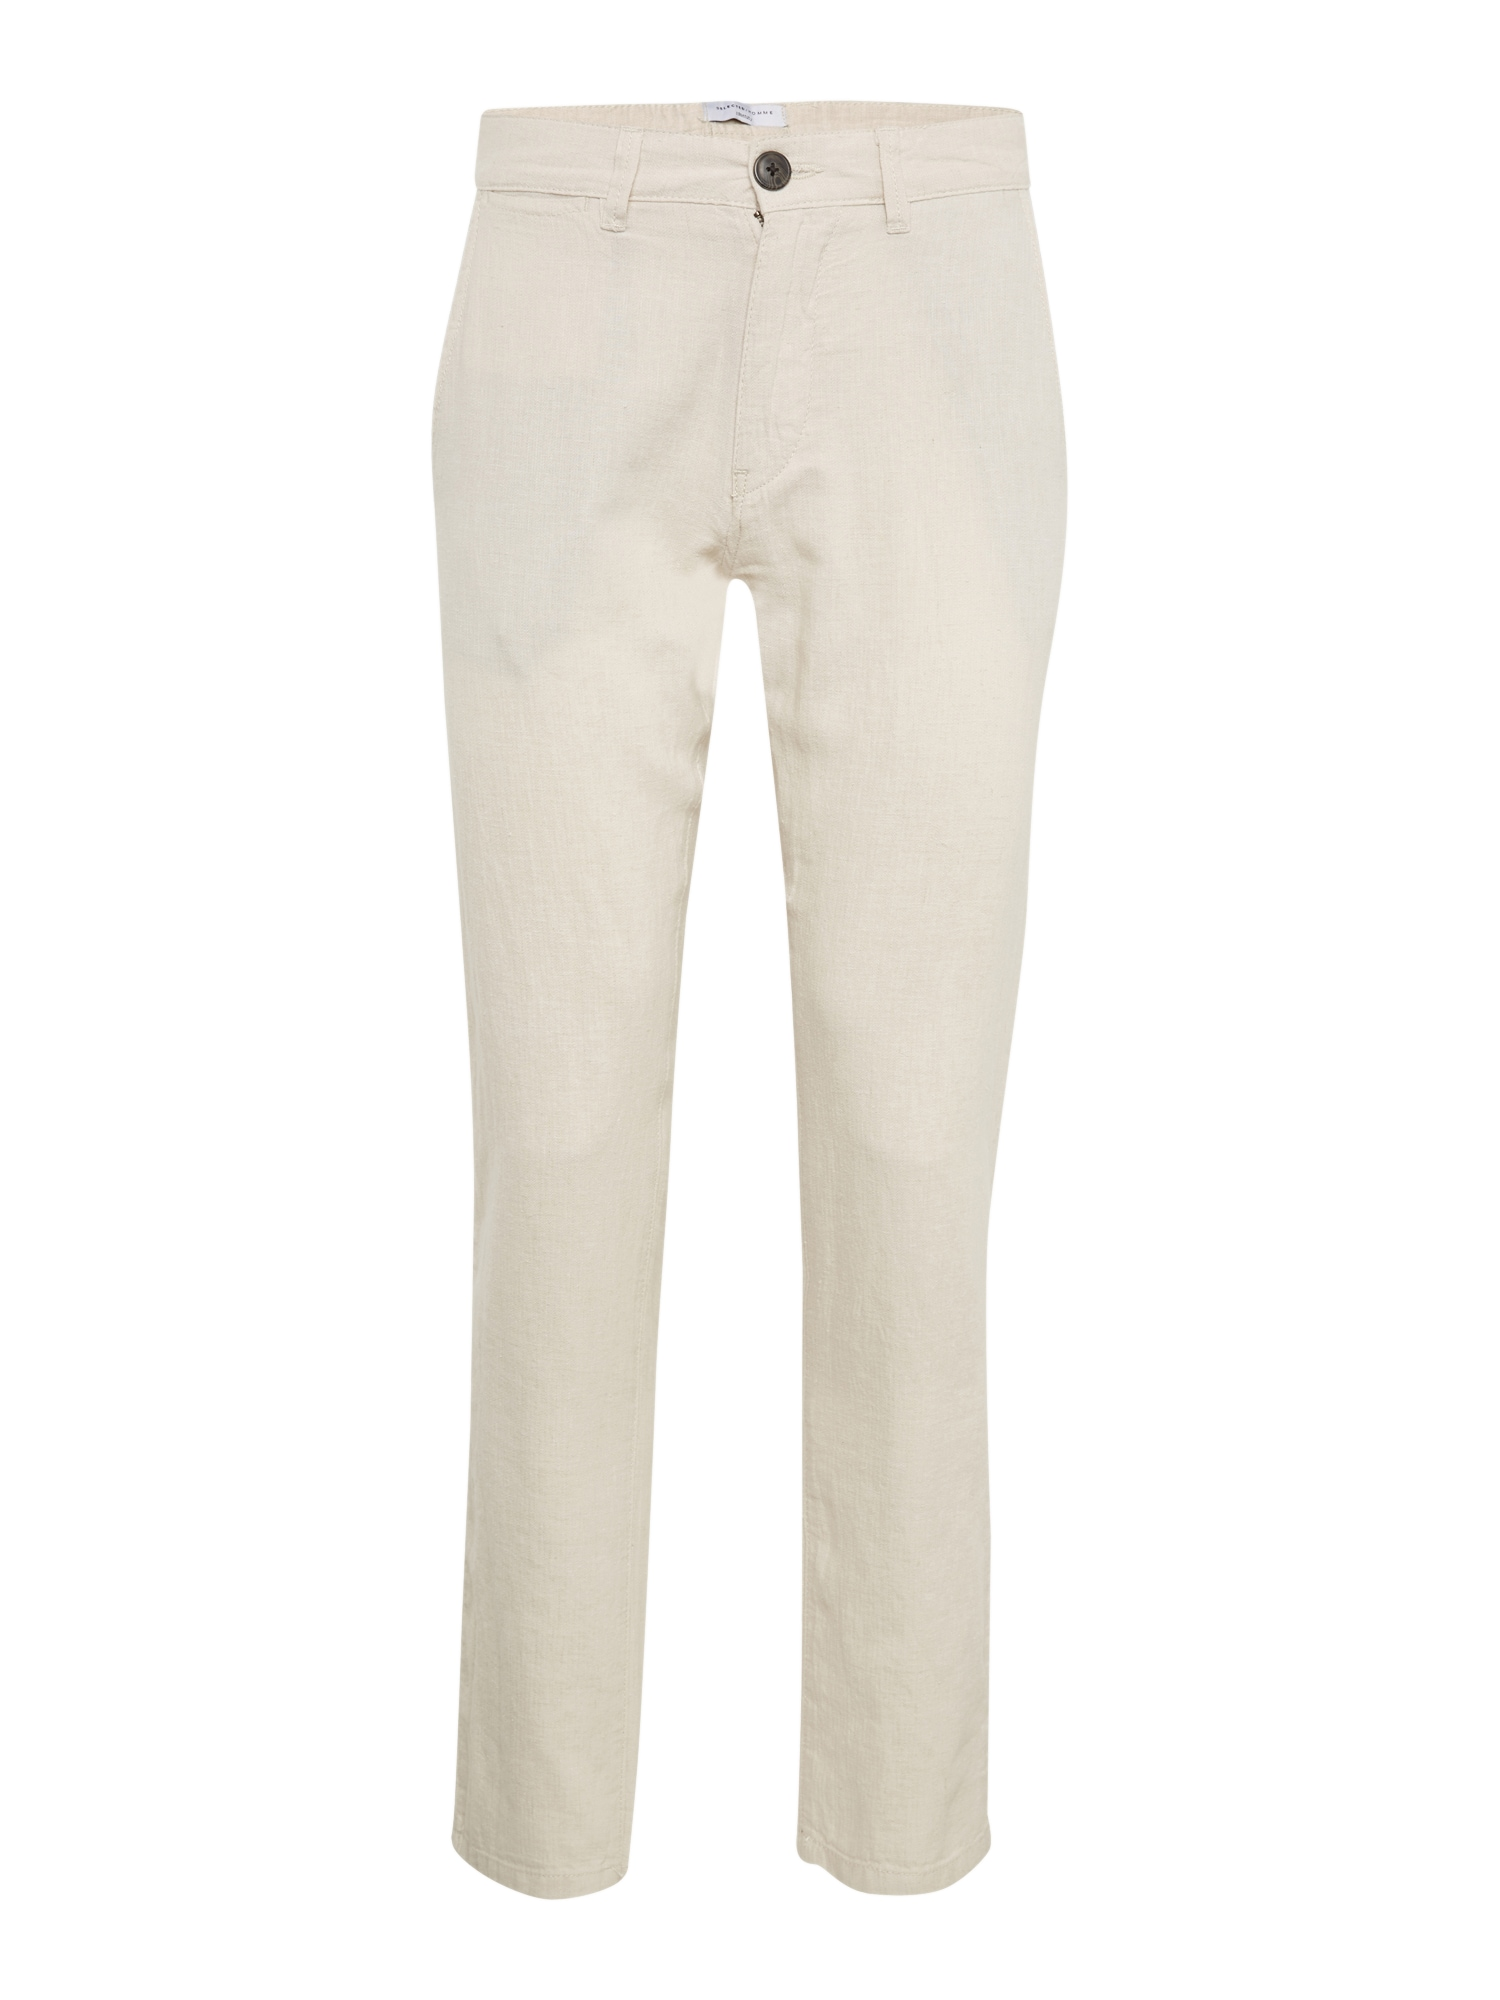 Chino kalhoty SHDJAMES OYSTER GREY LINEN TAPERED PANTS béžová SELECTED HOMME